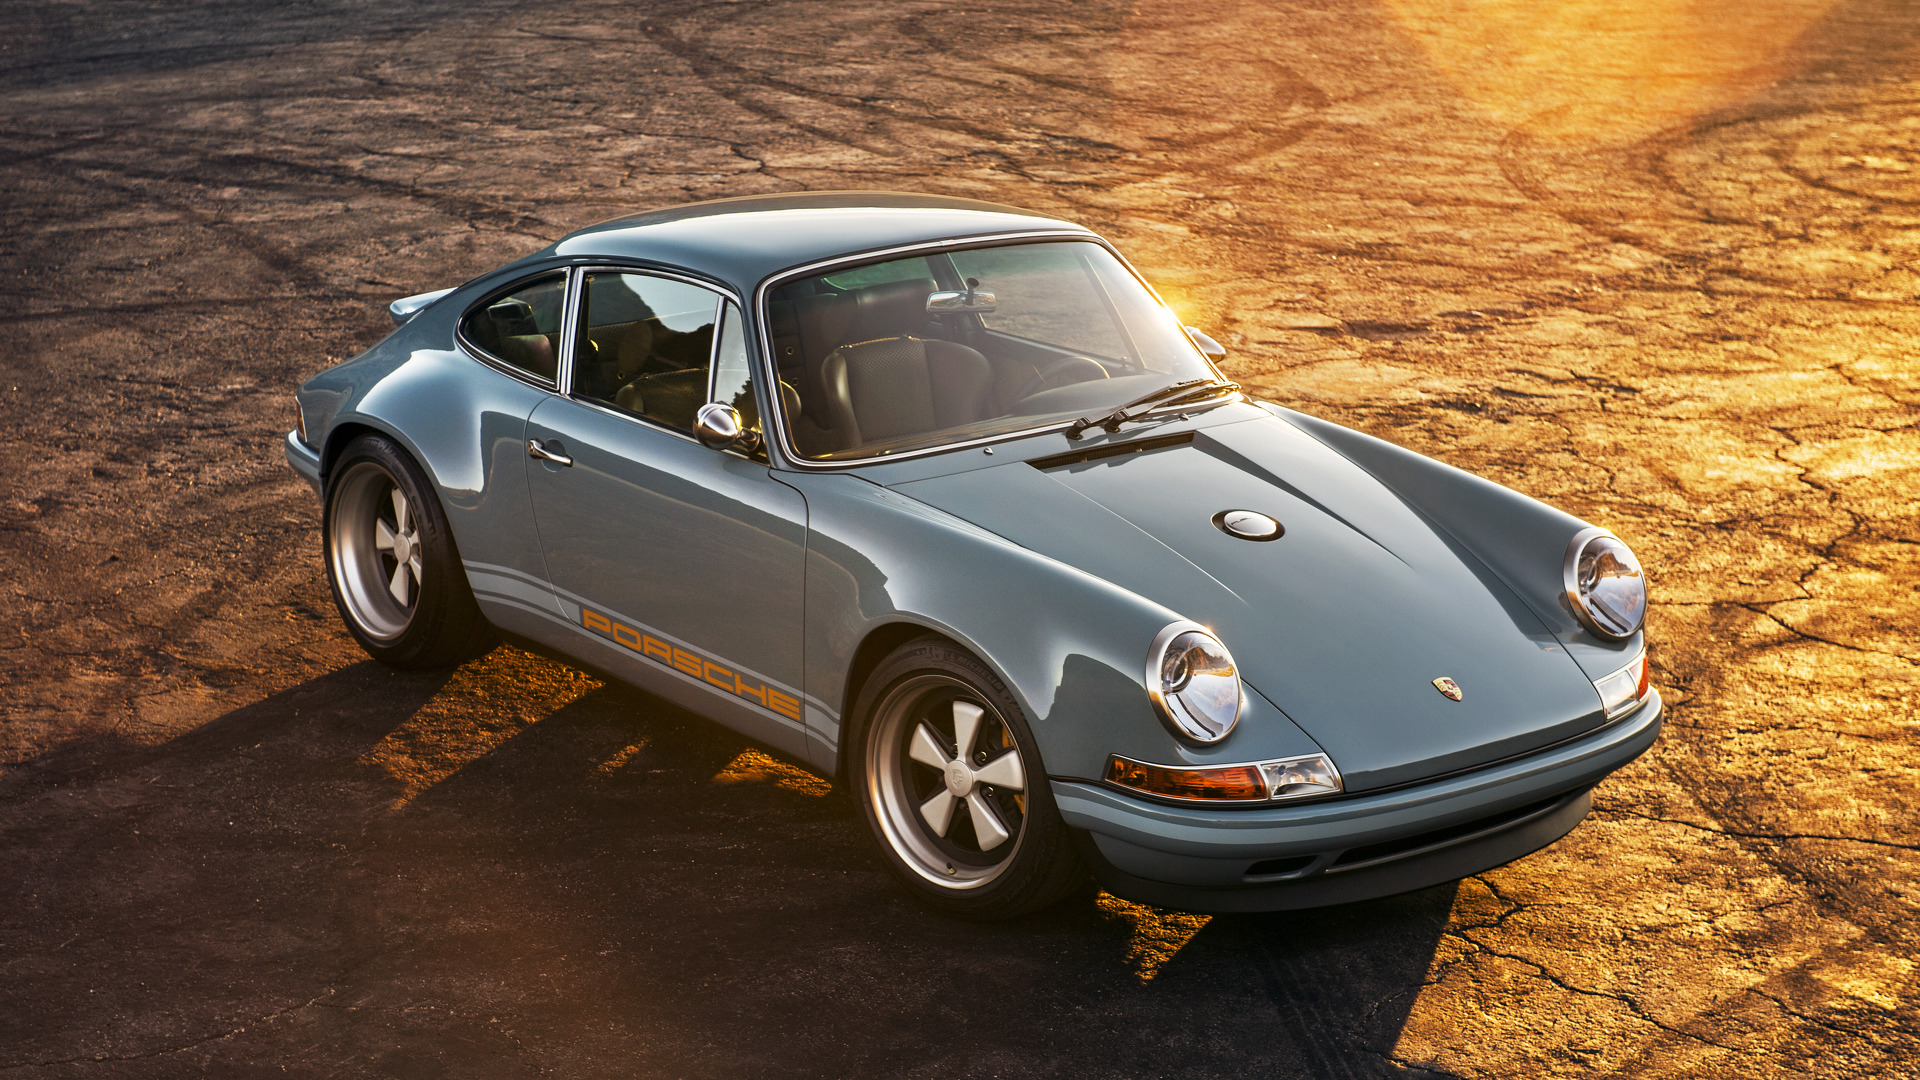 2 of singer s restored porsche 911s add style to amelia island